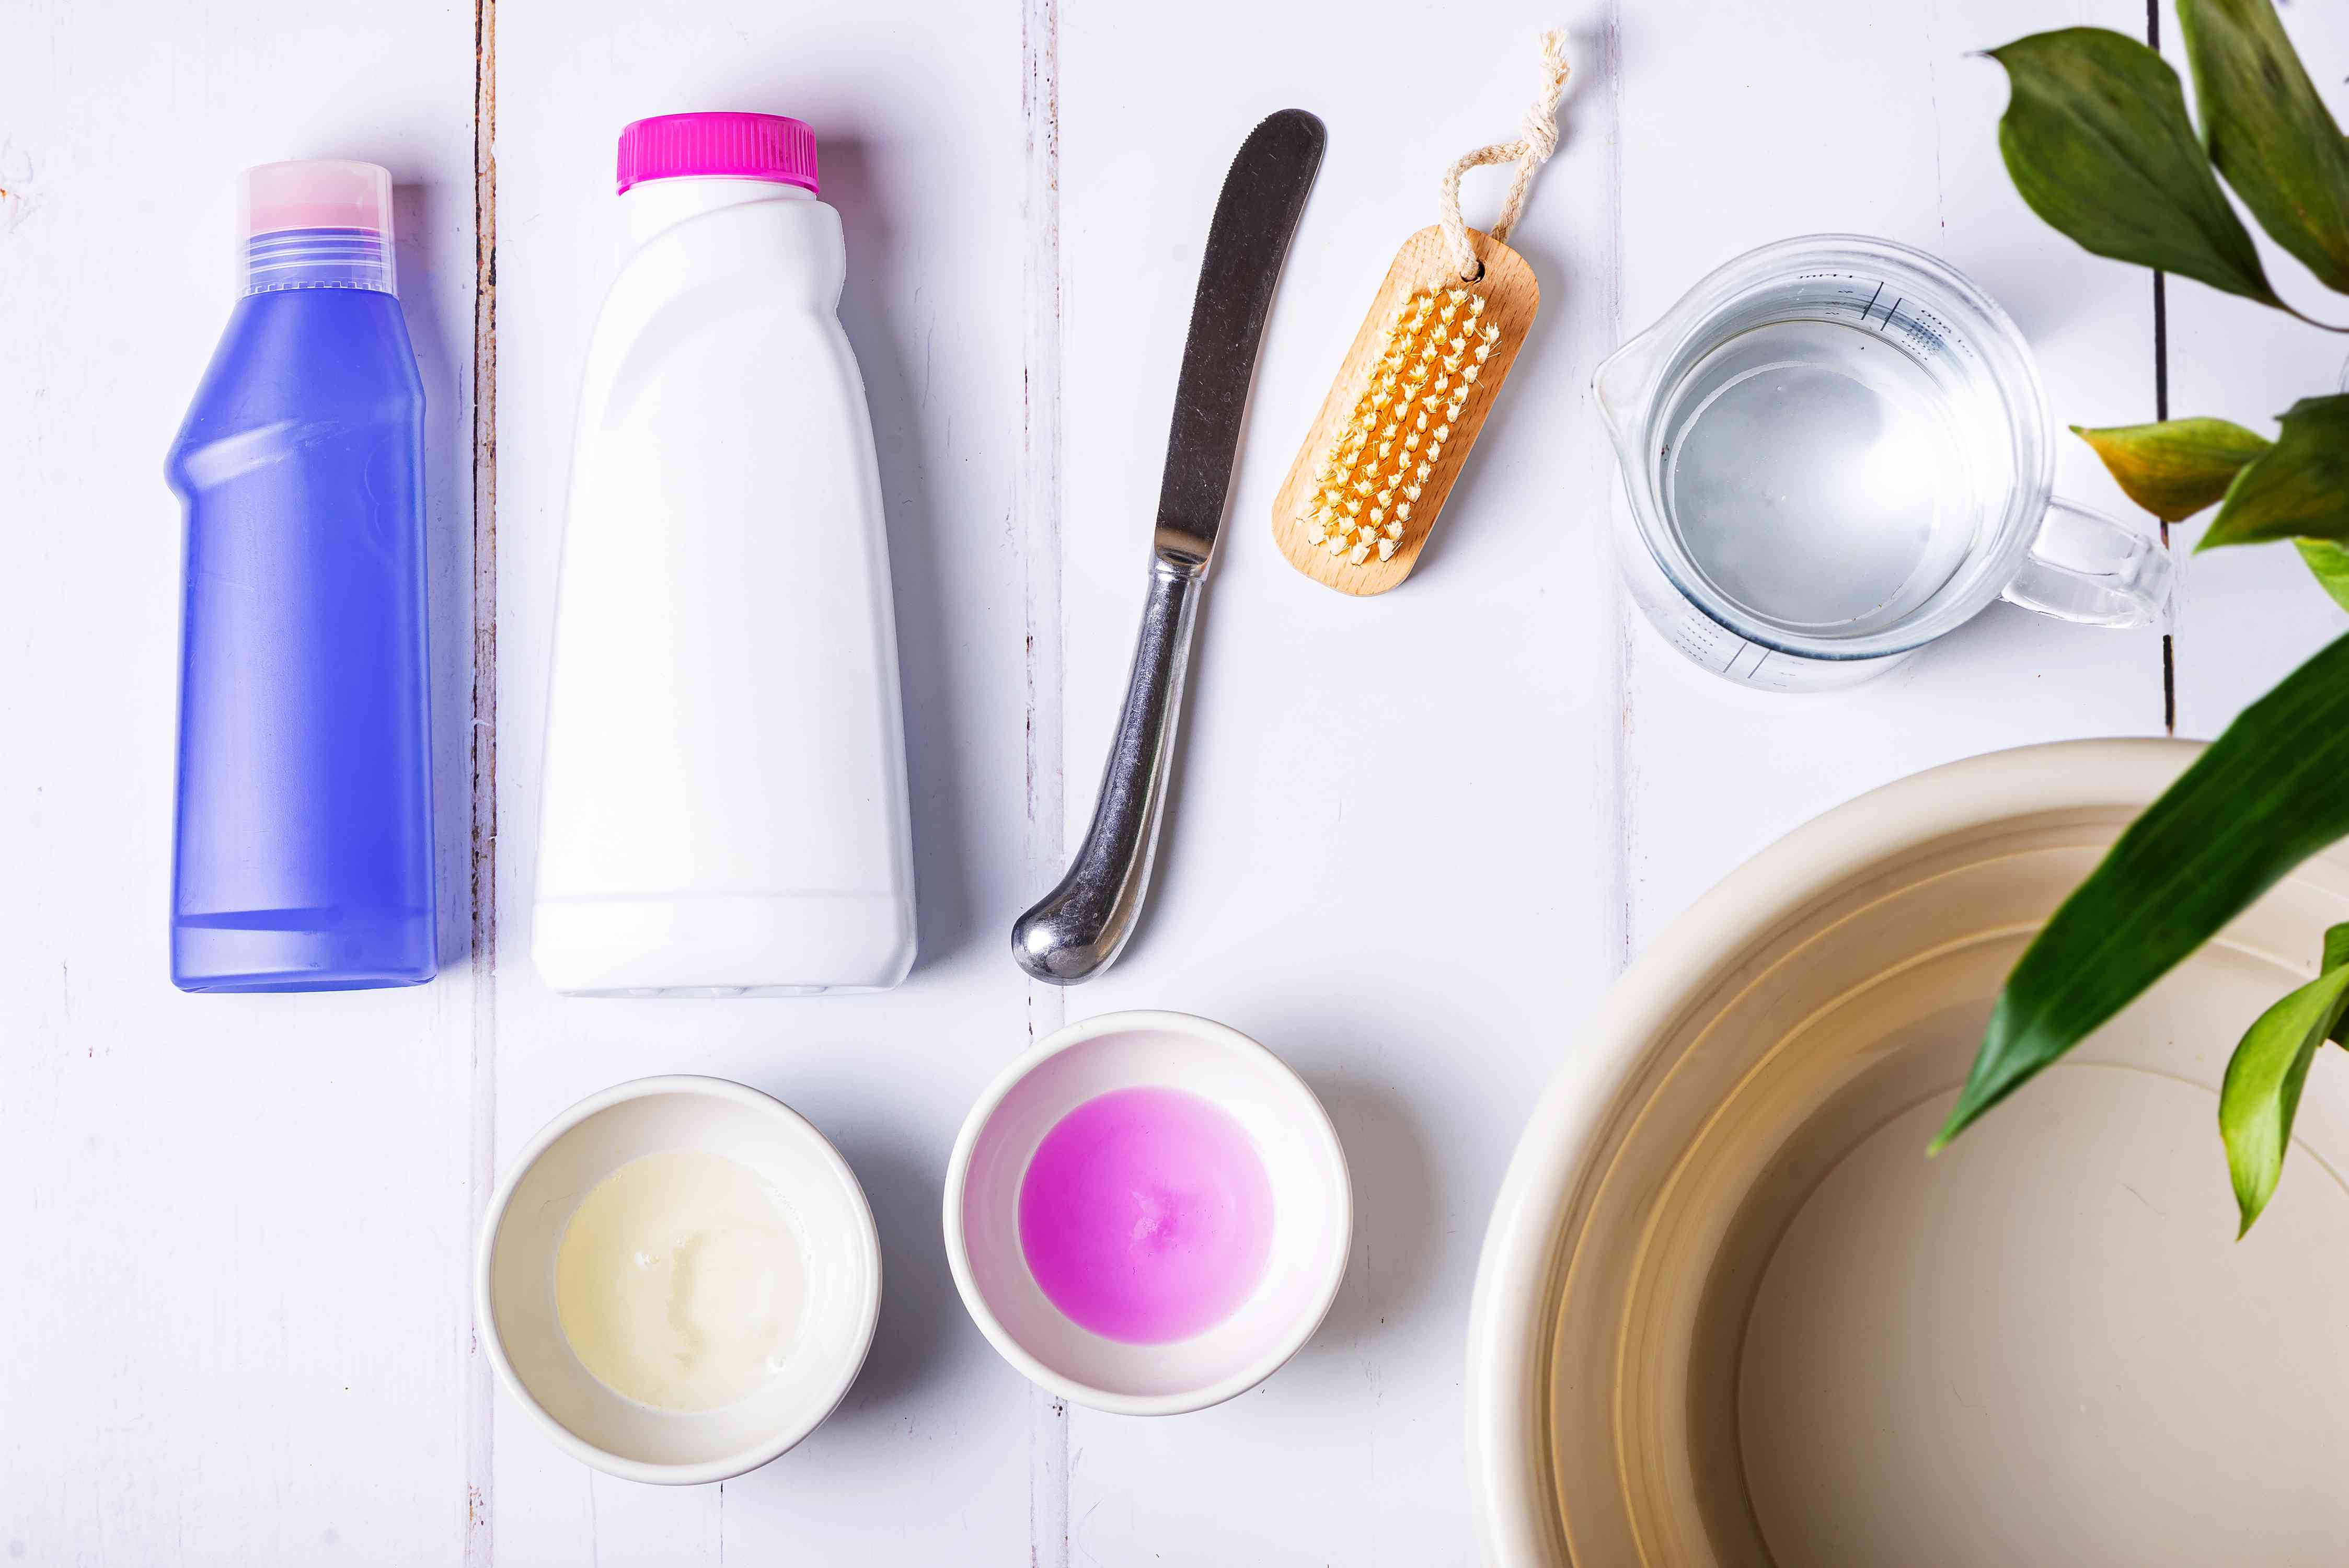 materials for removing berry stains